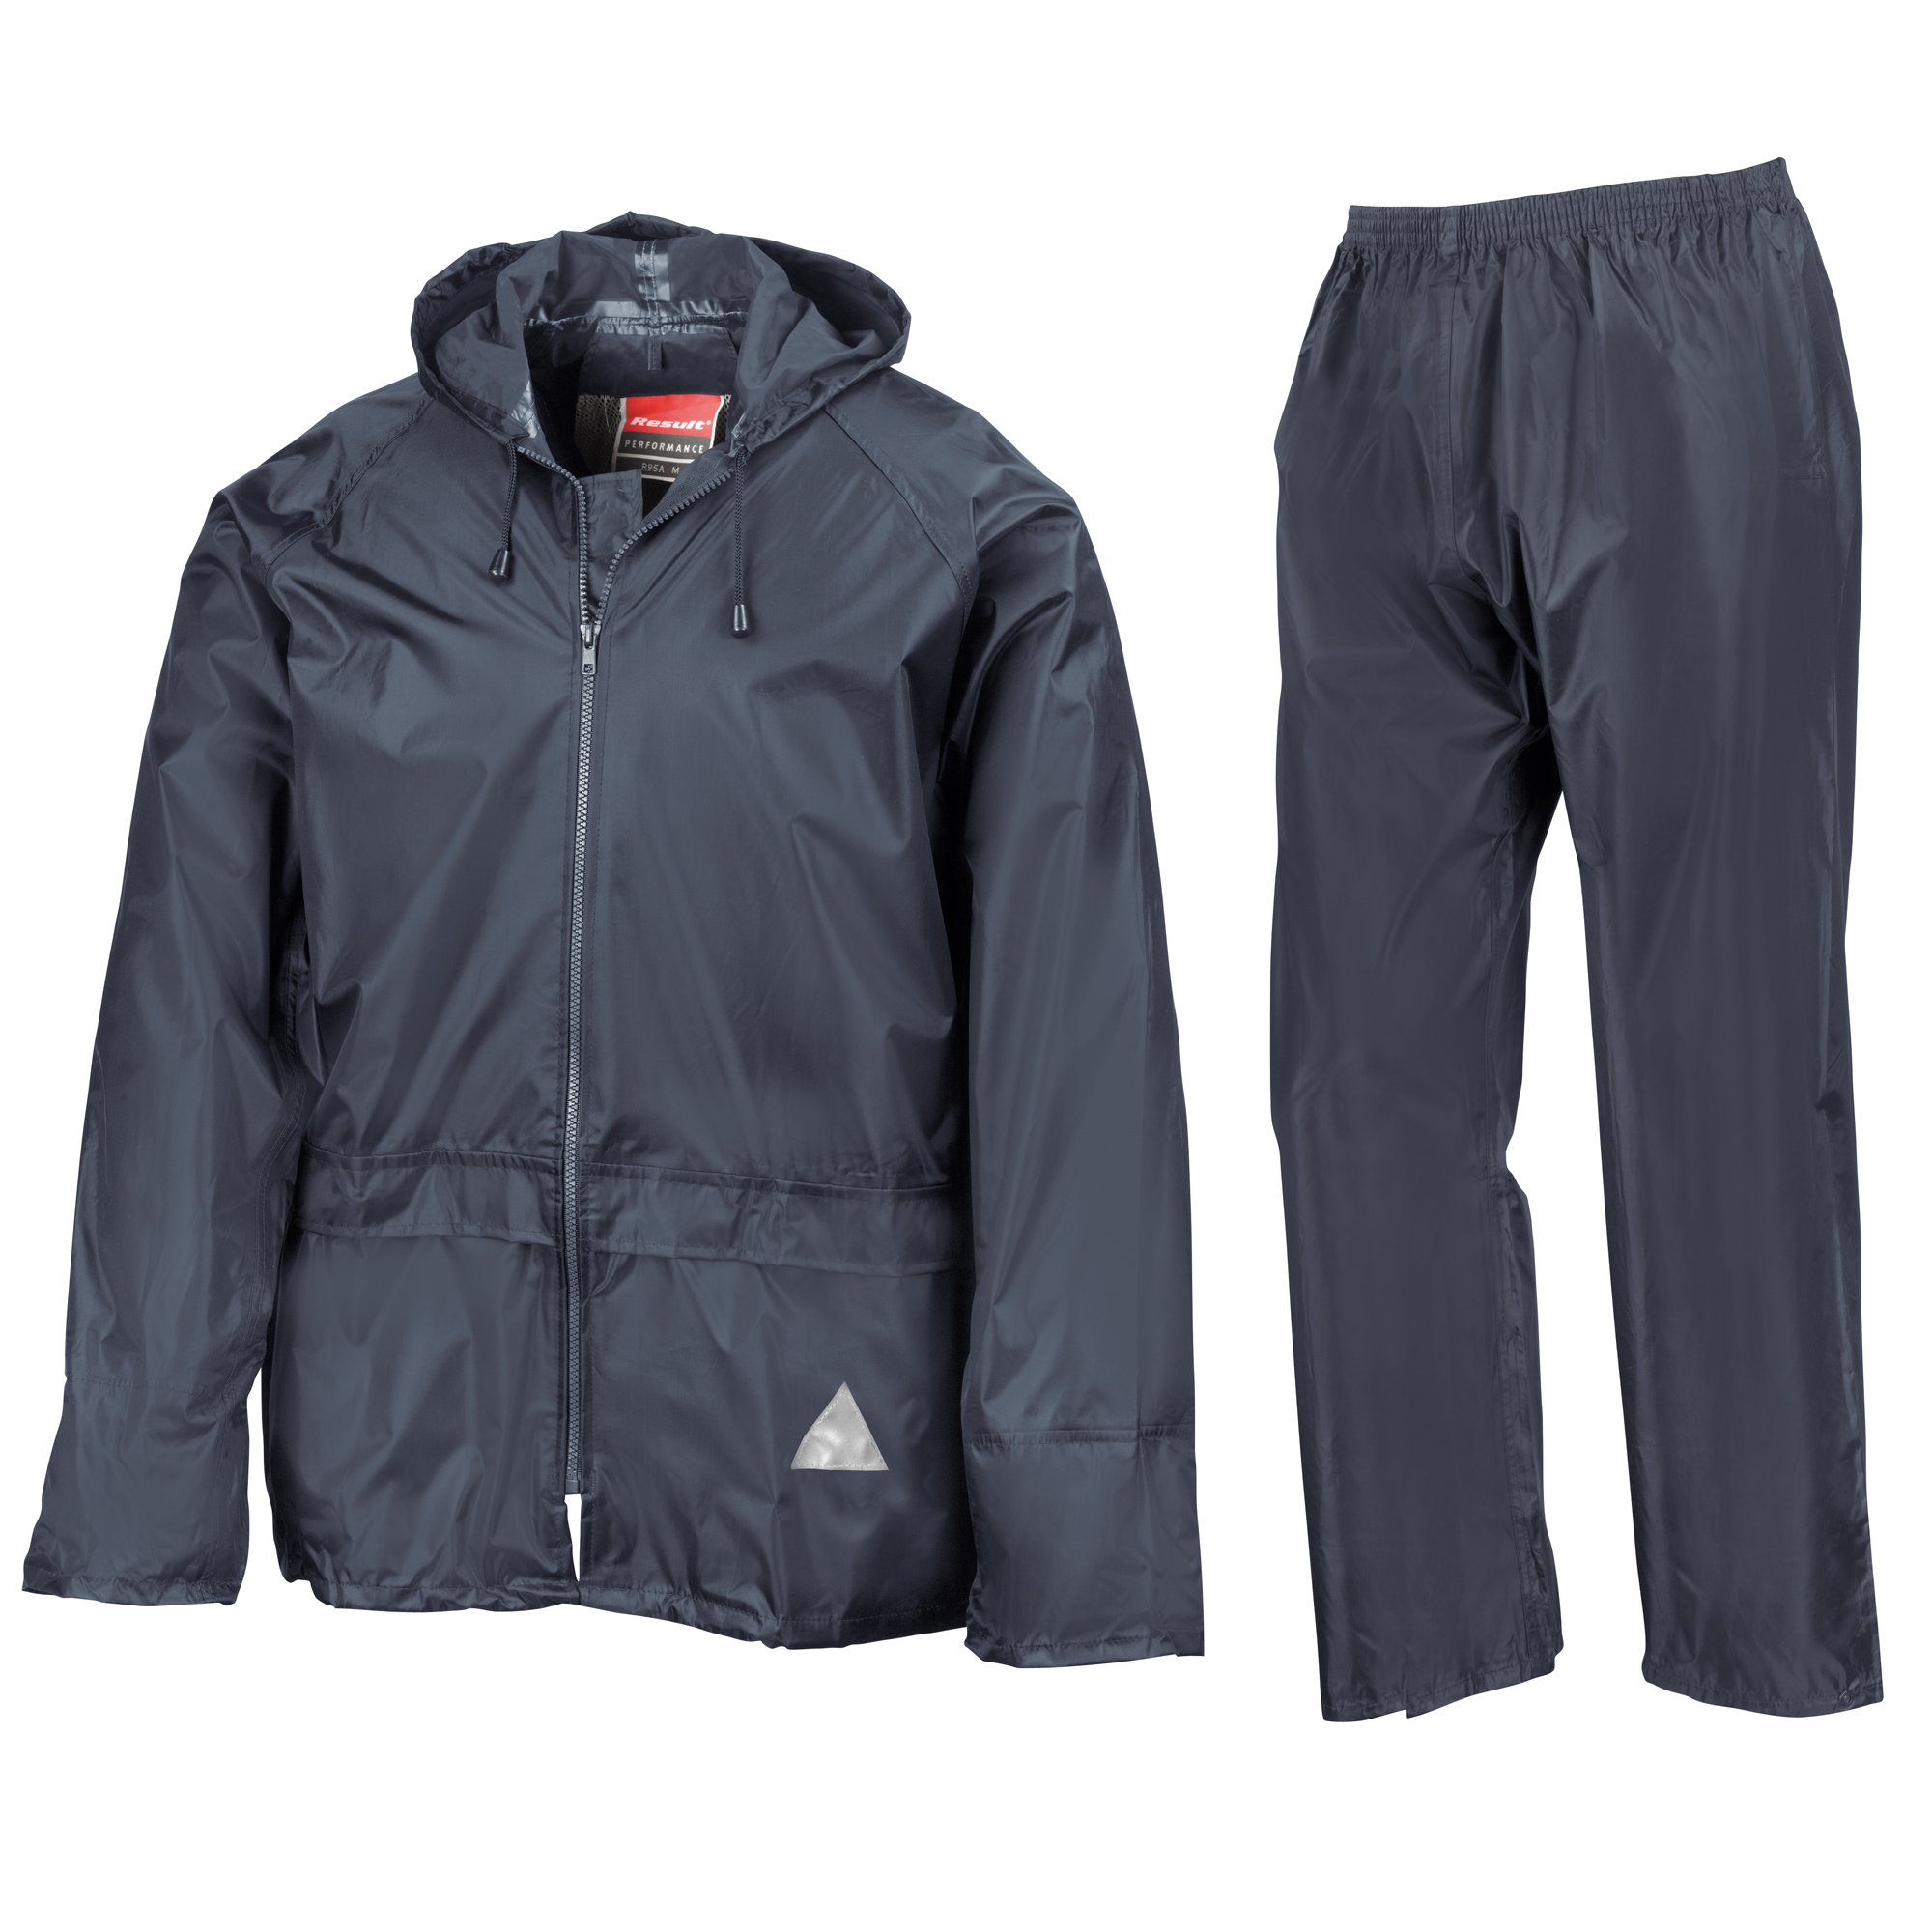 Result Mens Heavyweight Waterproof Rain Suit (Jacket & Trouser Suit) (L) (Navy) by Result